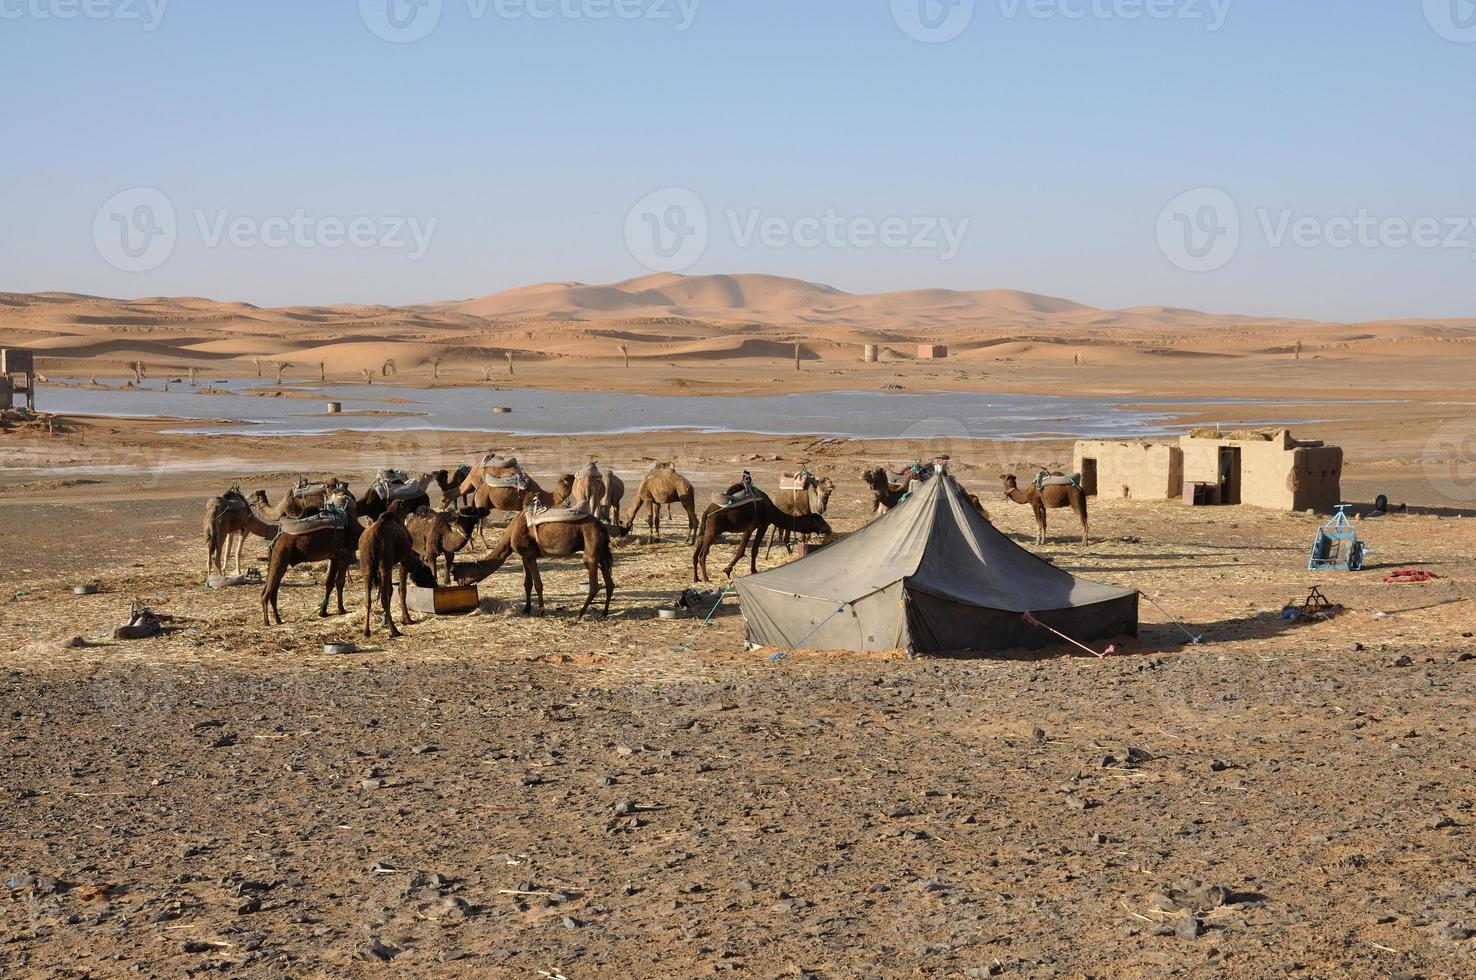 Camels in the oasis, Sahara desert photo